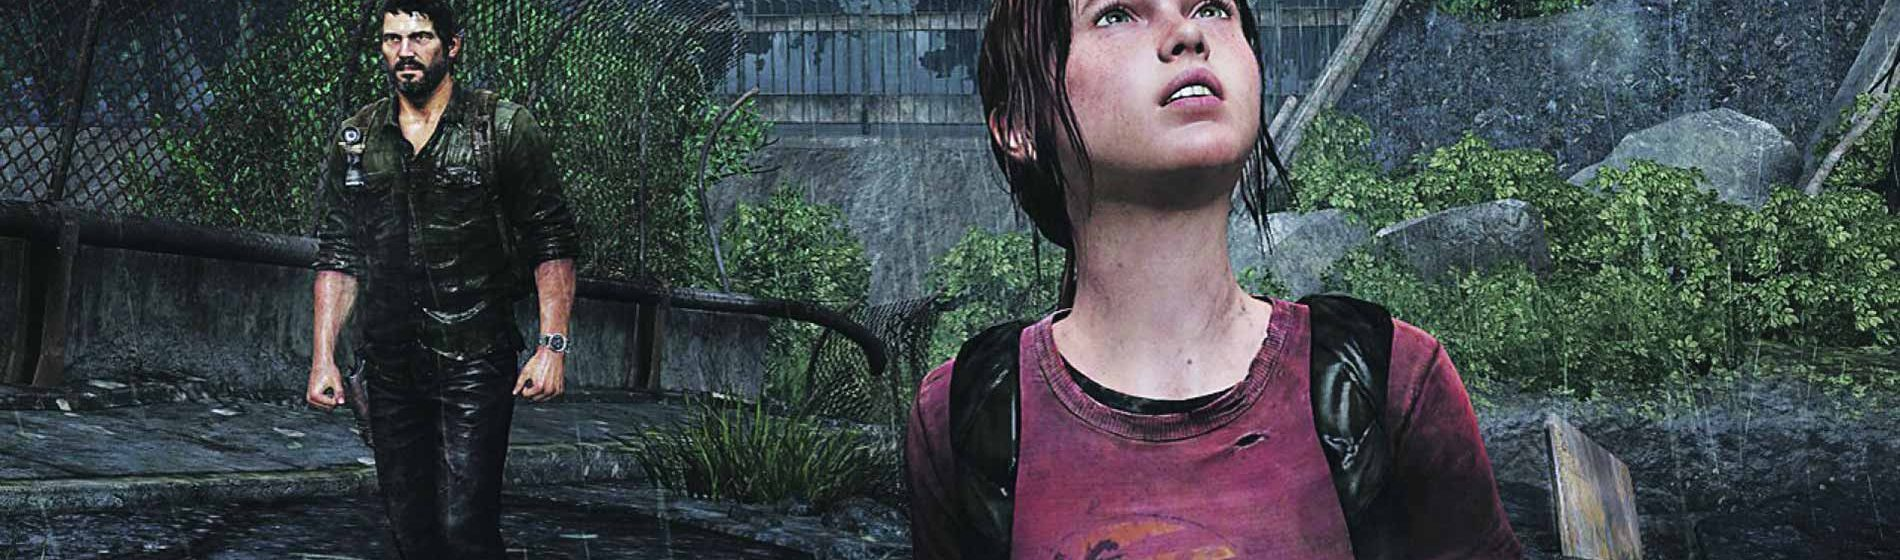 The Last of Us - Ellie